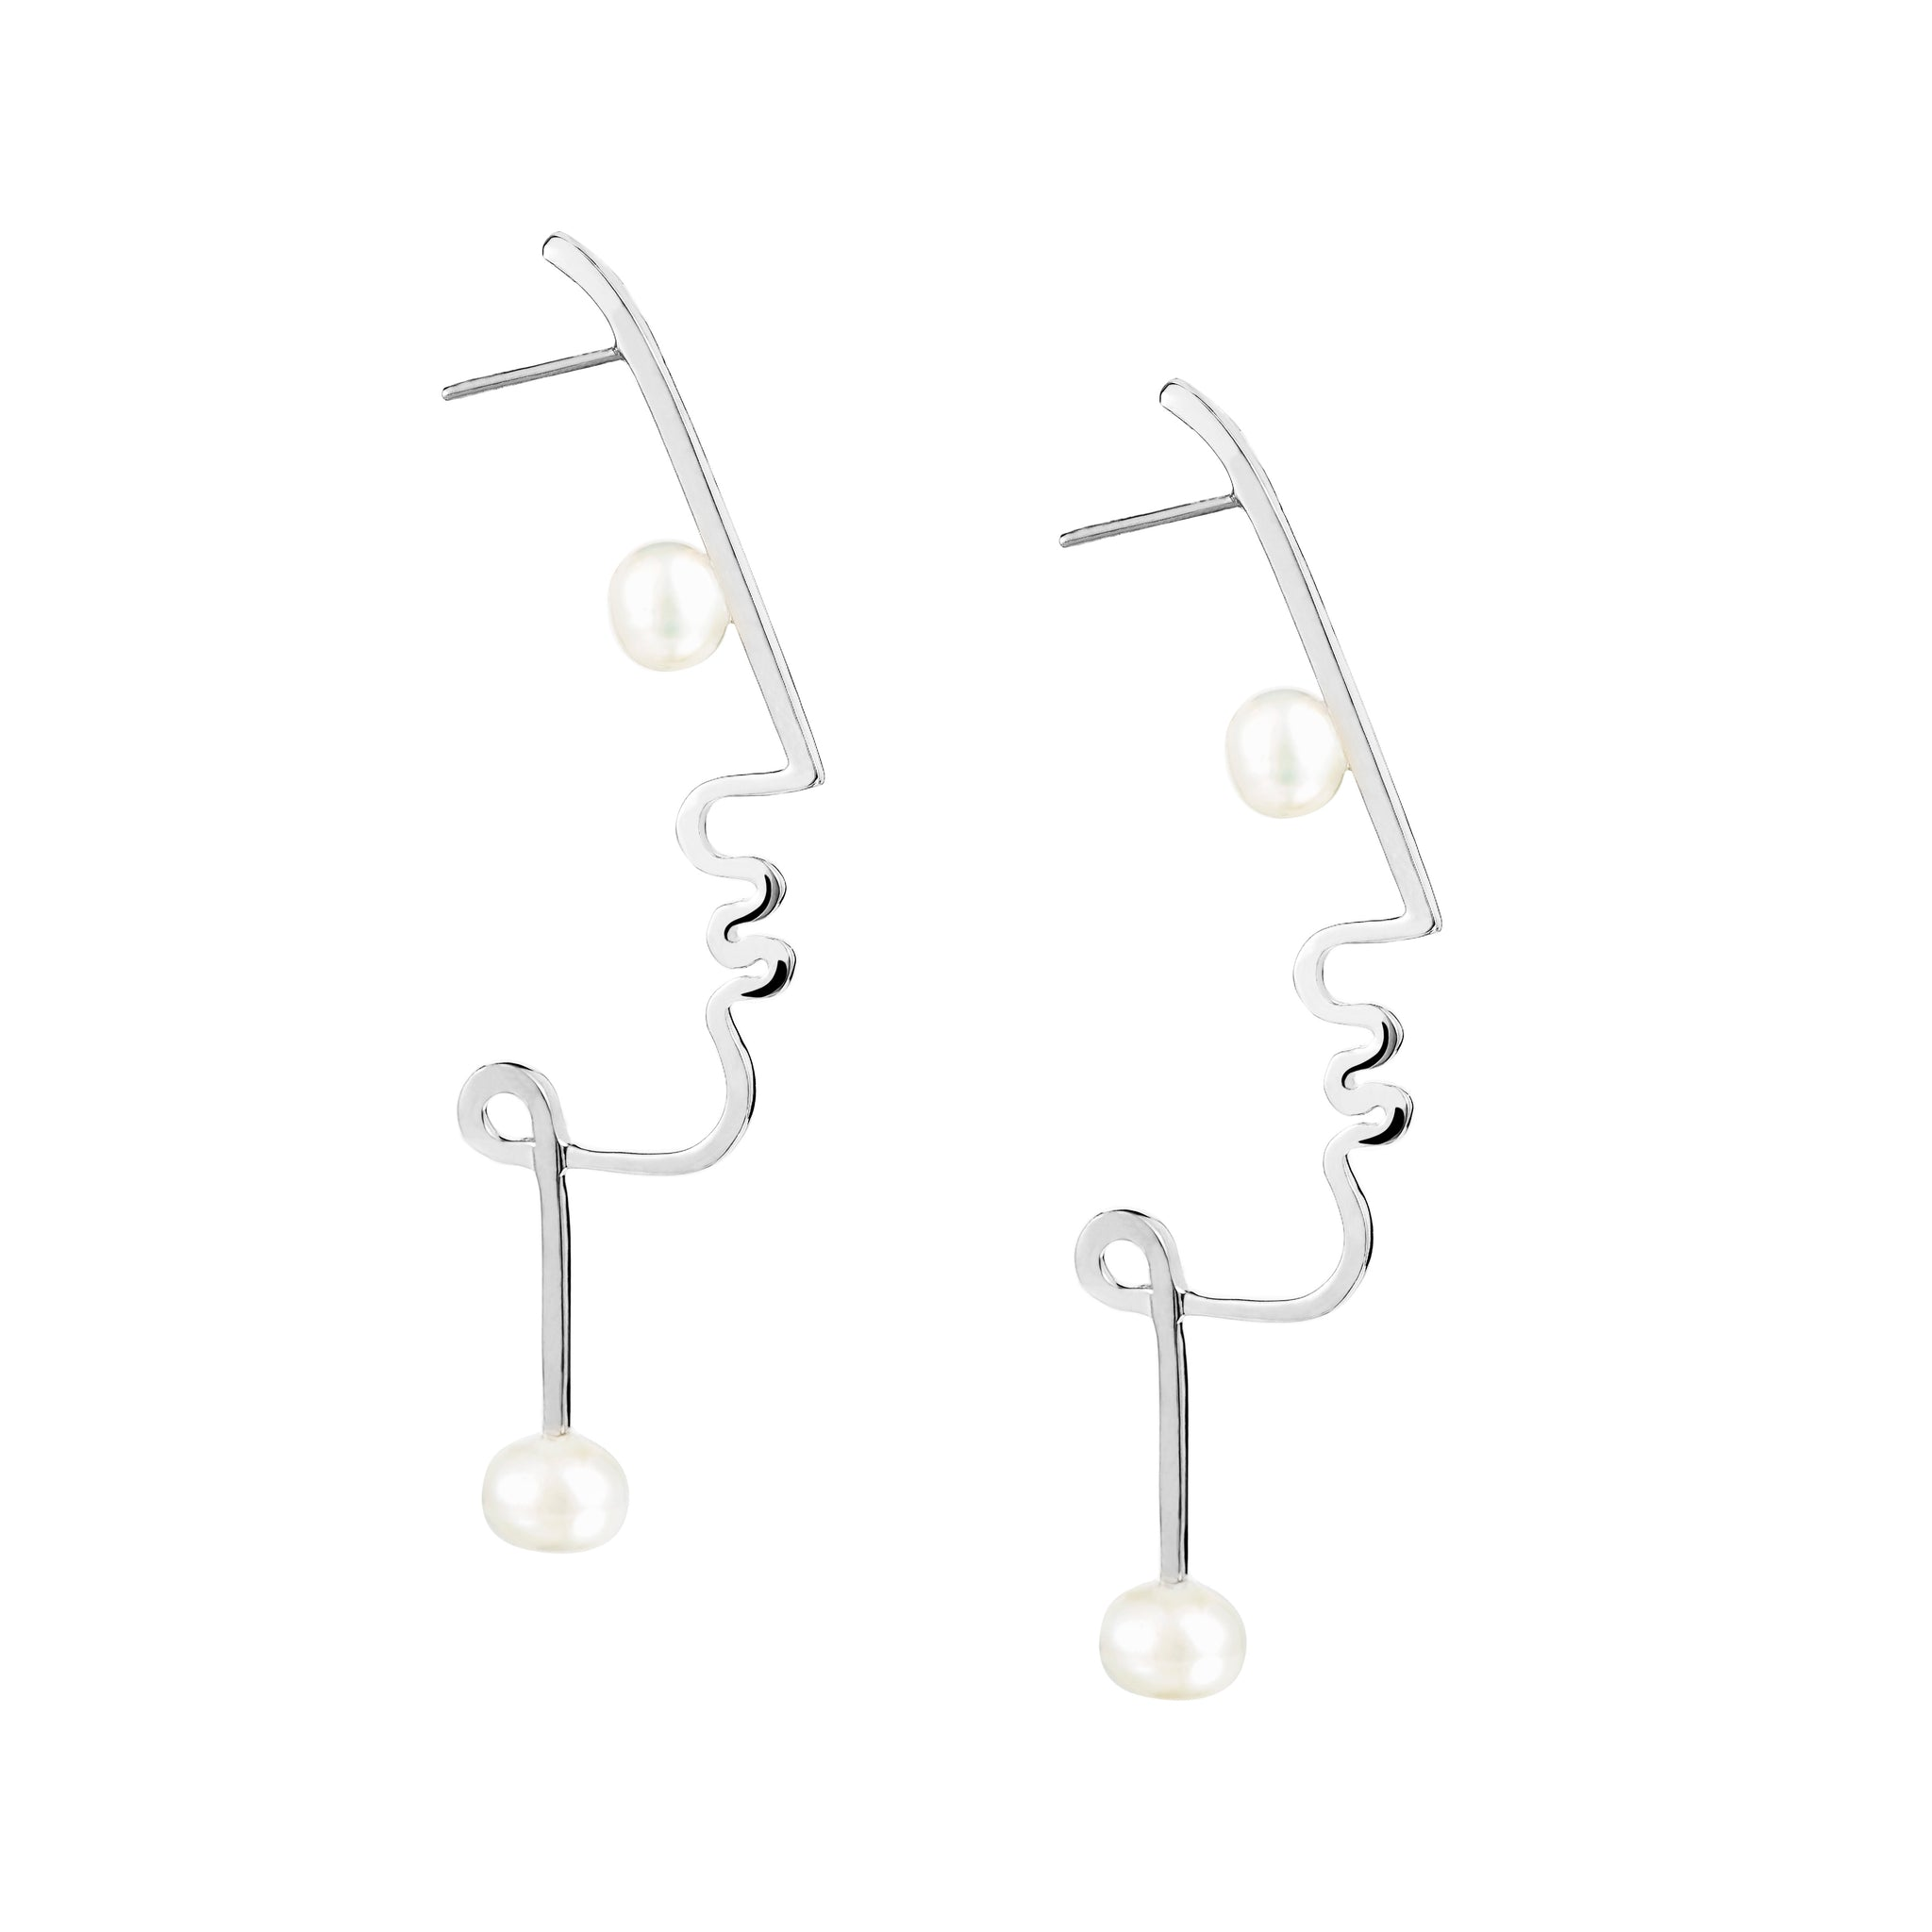 PAOLA VILAS - BRINCO HENRI EARRINGS